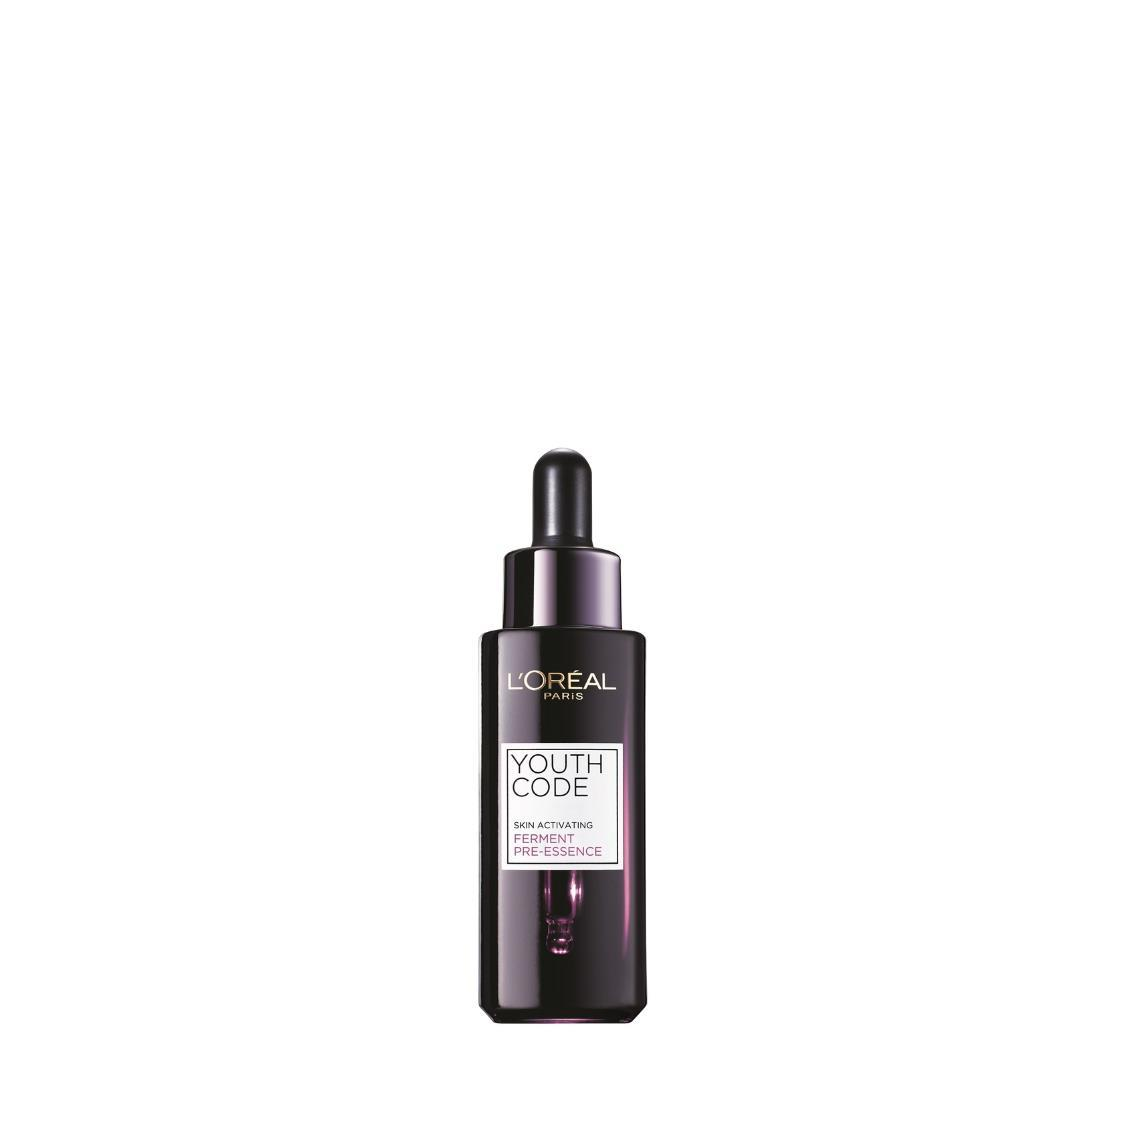 Youth Code Pre-Essence 30ml